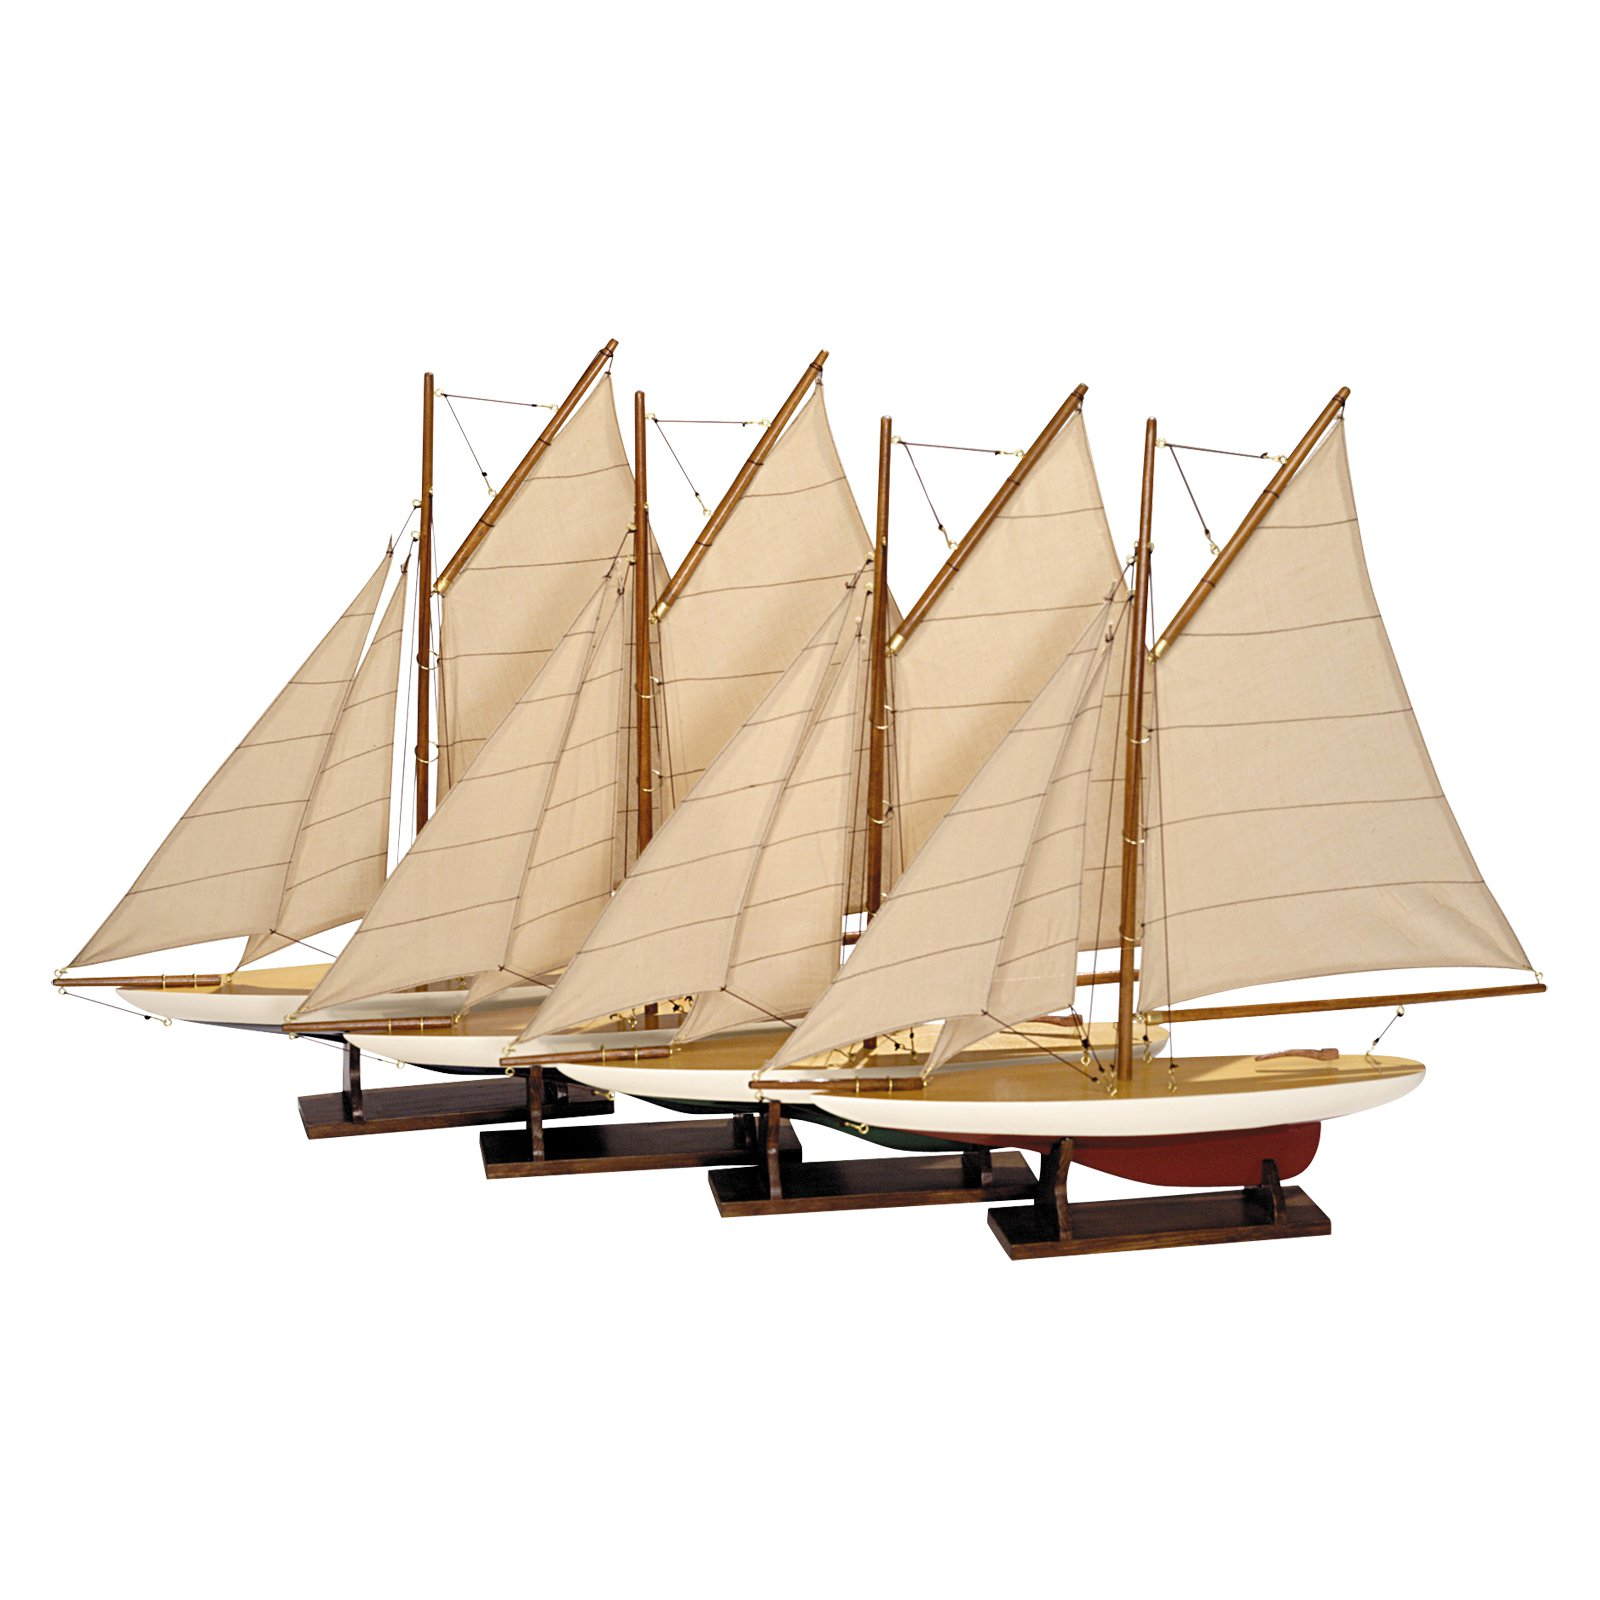 Authentic Models Mini Pond Yacht - Set of 4